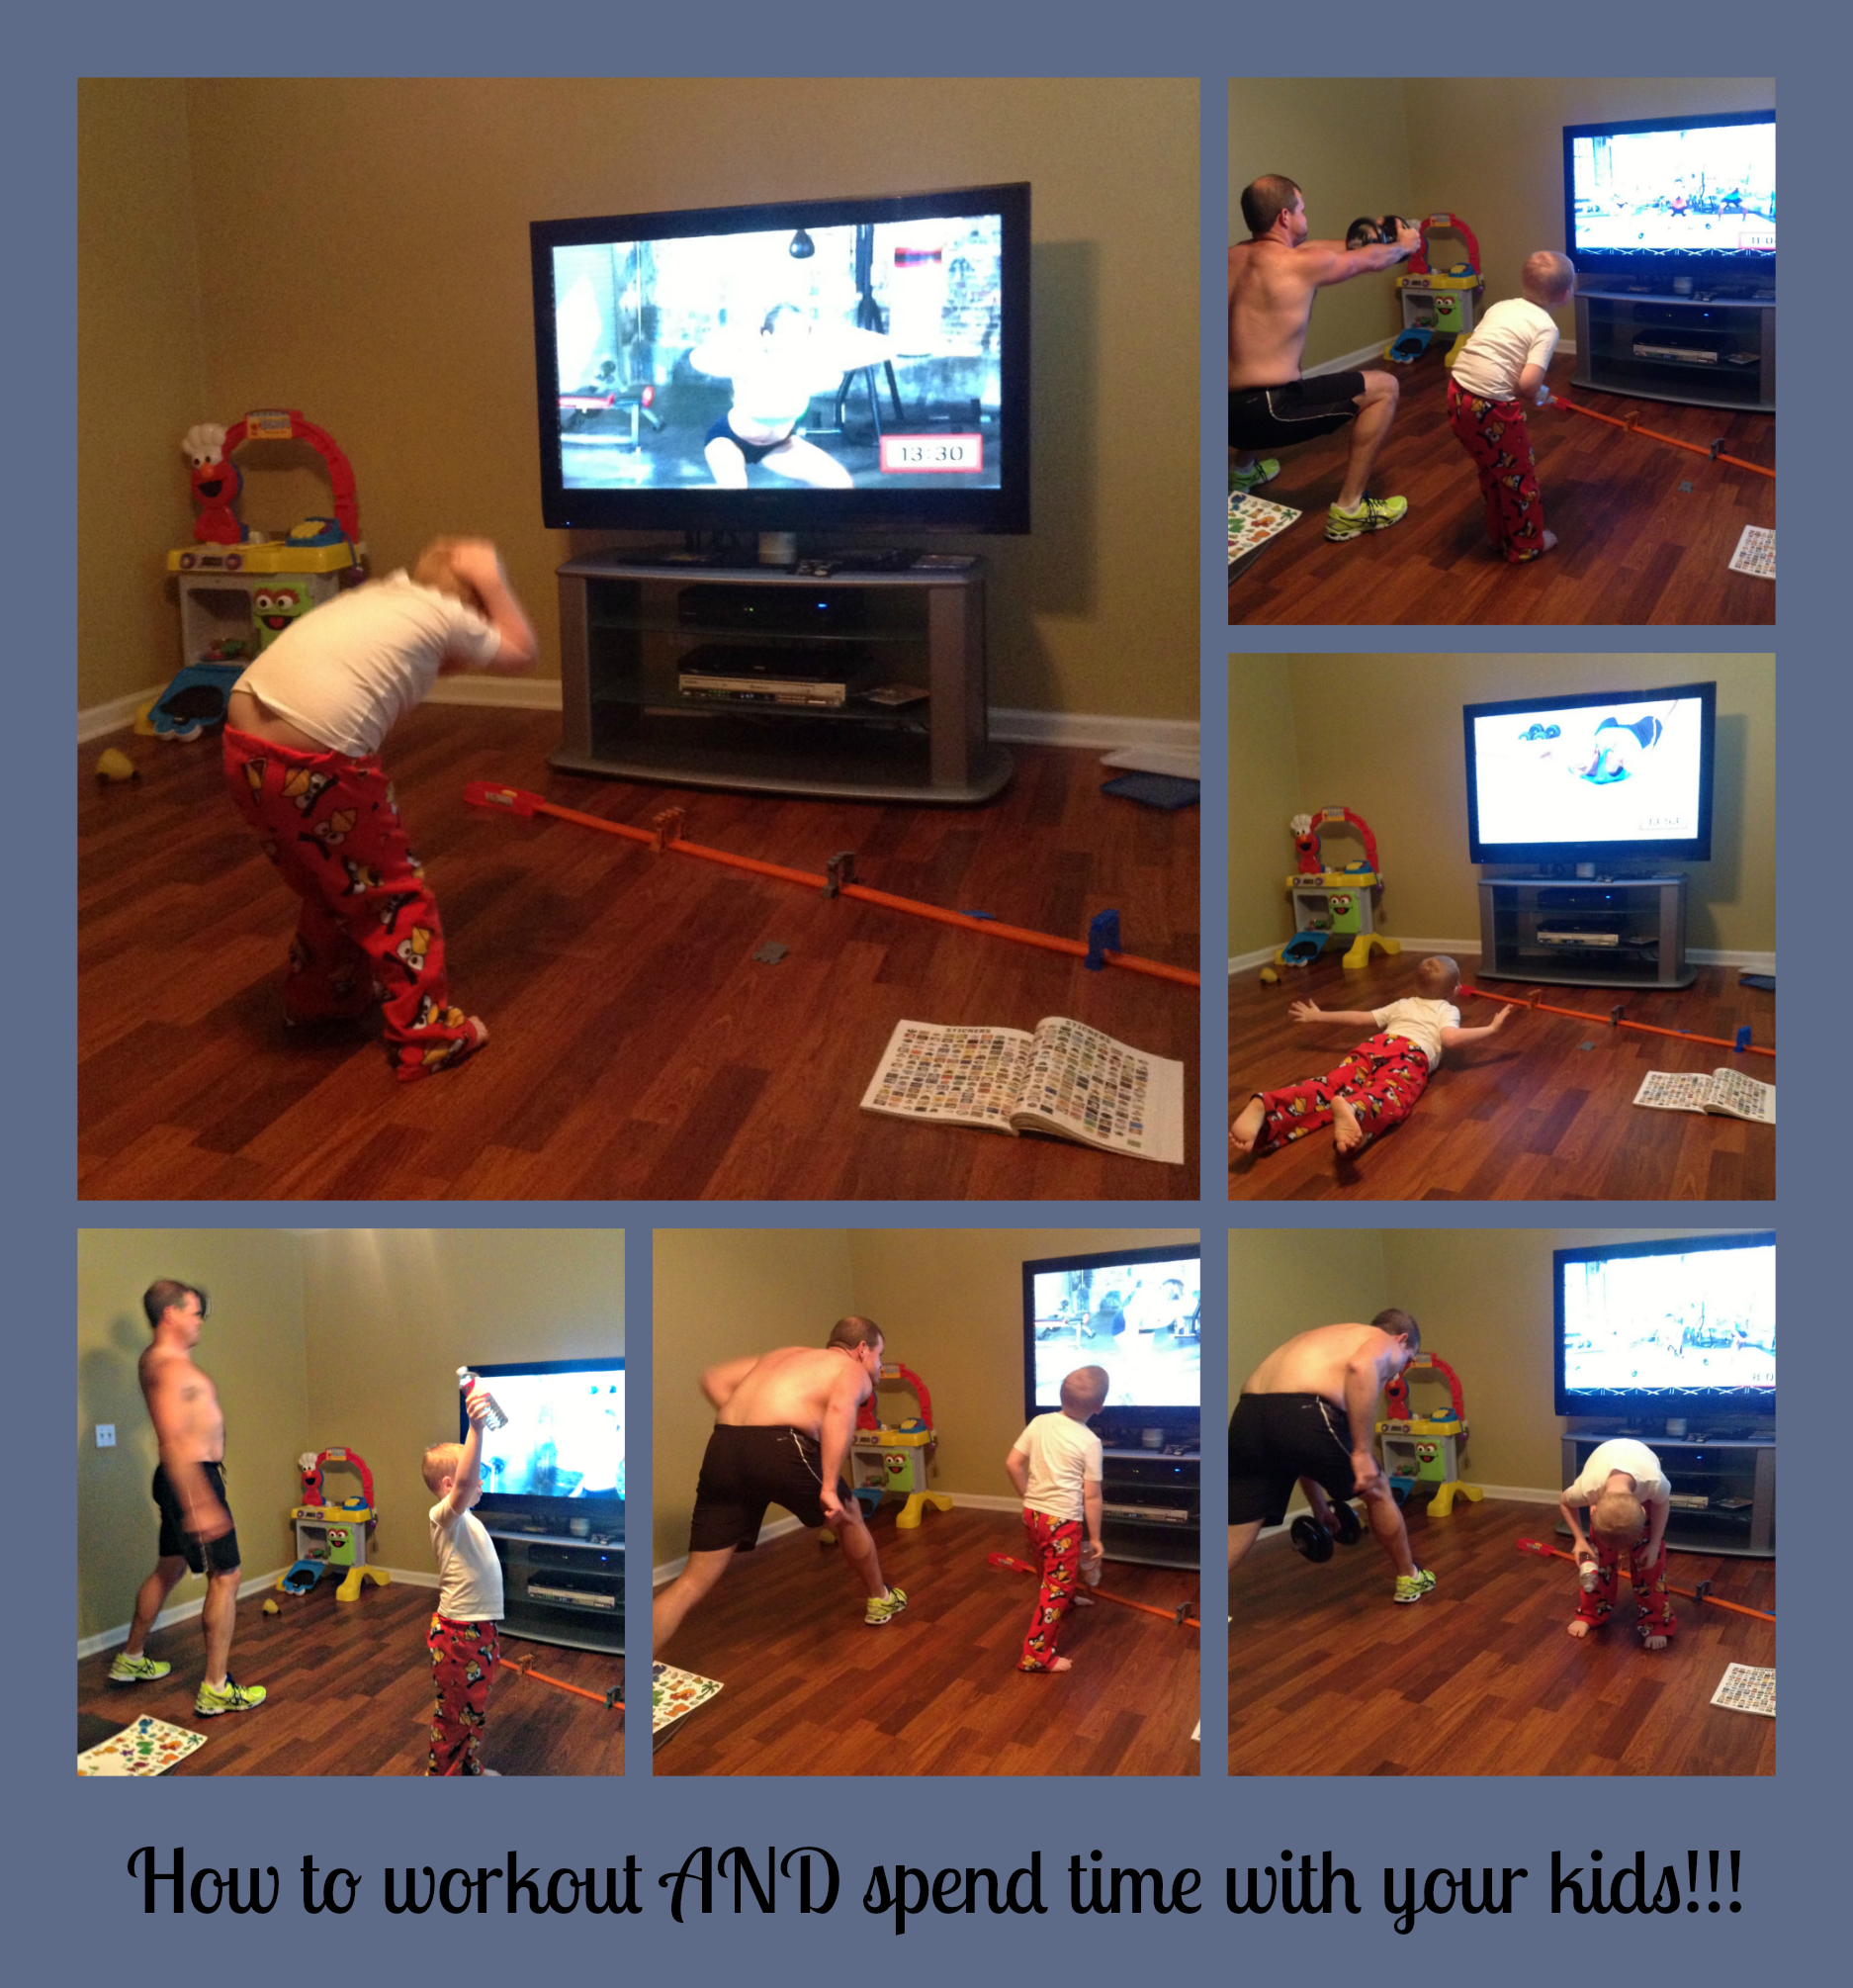 Your workout doesn't have to take time away from your kids.